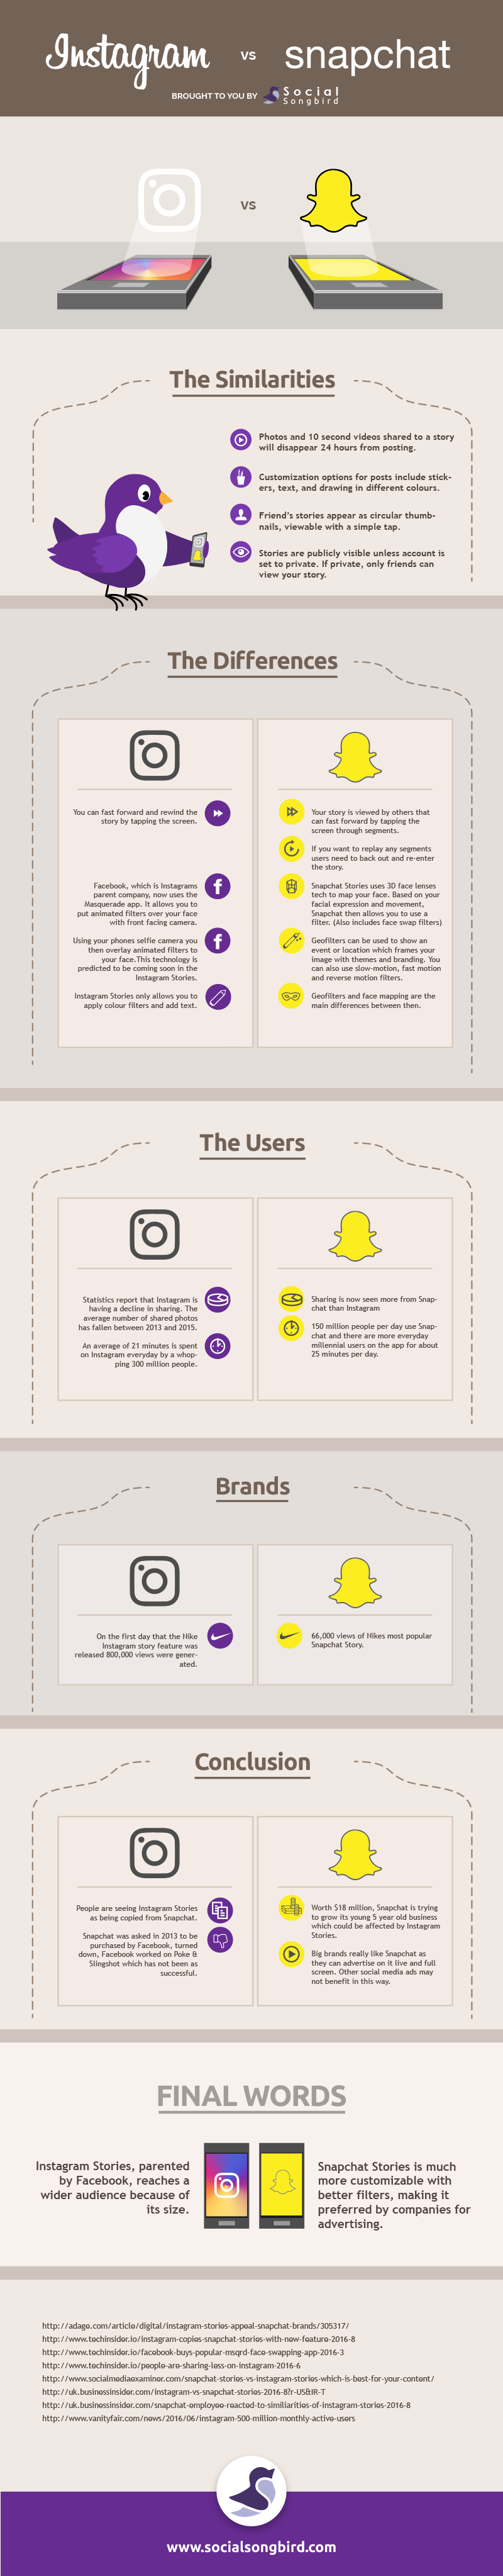 Infographic: Instagram vs Snapchat Stories